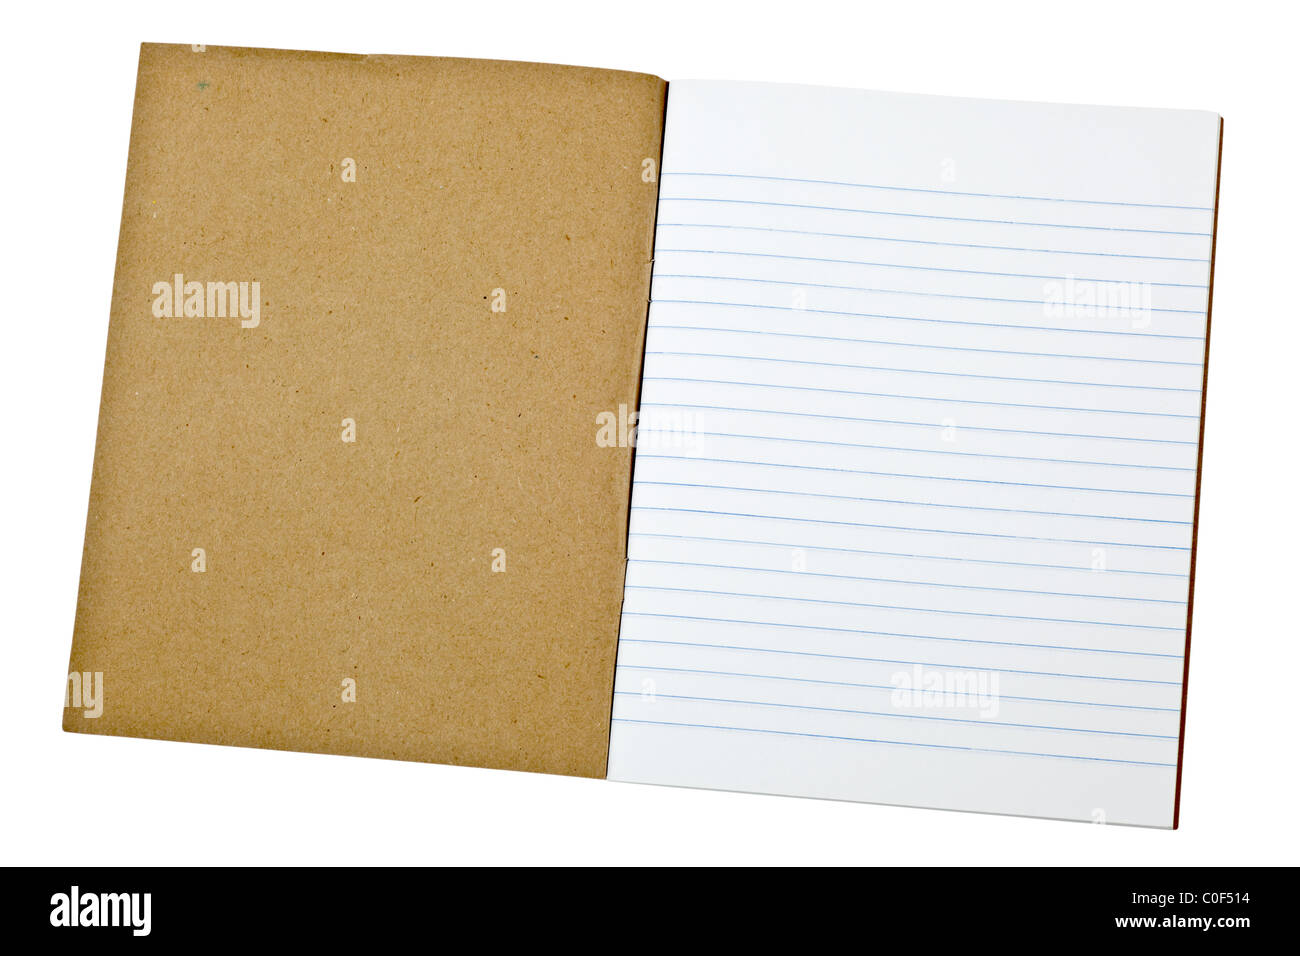 First page of a blank exercise book isolated on white background - Stock Image